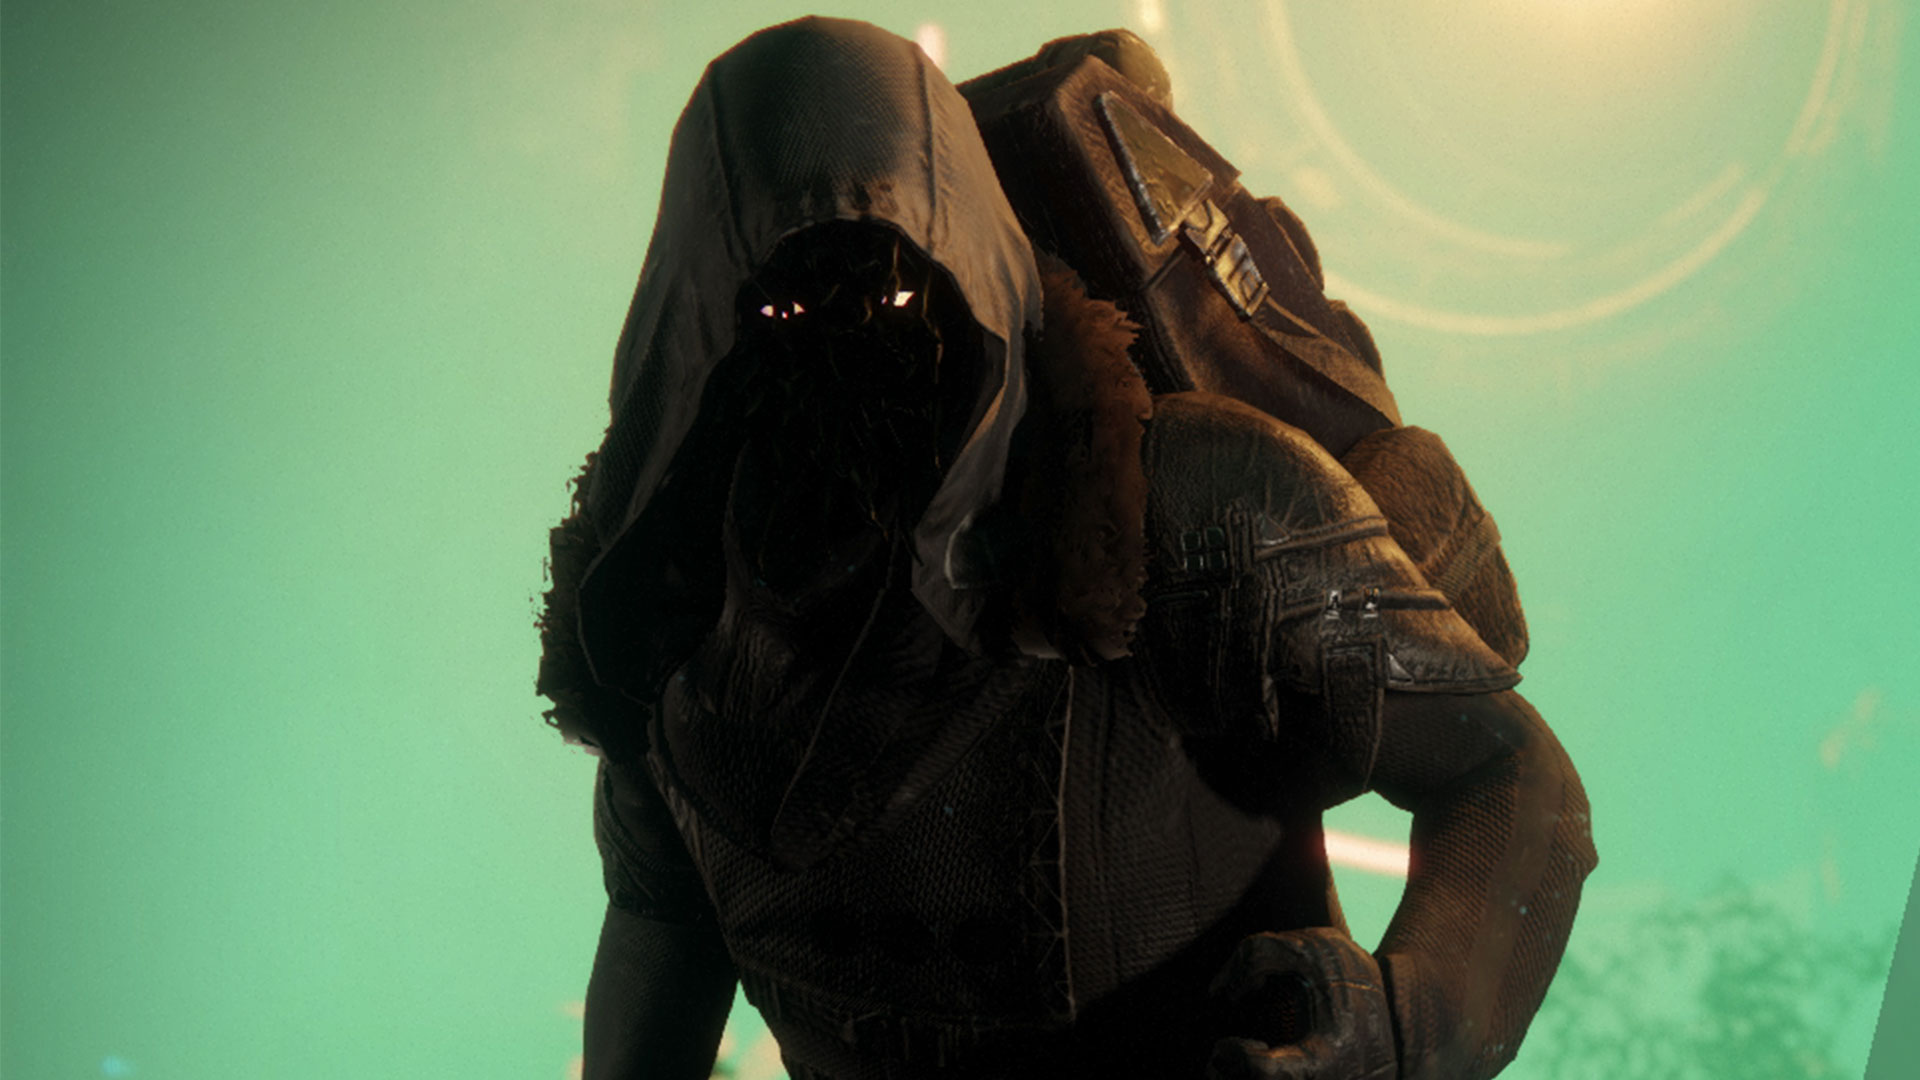 Destiny 2 Xur location and items, Aug. 9-13